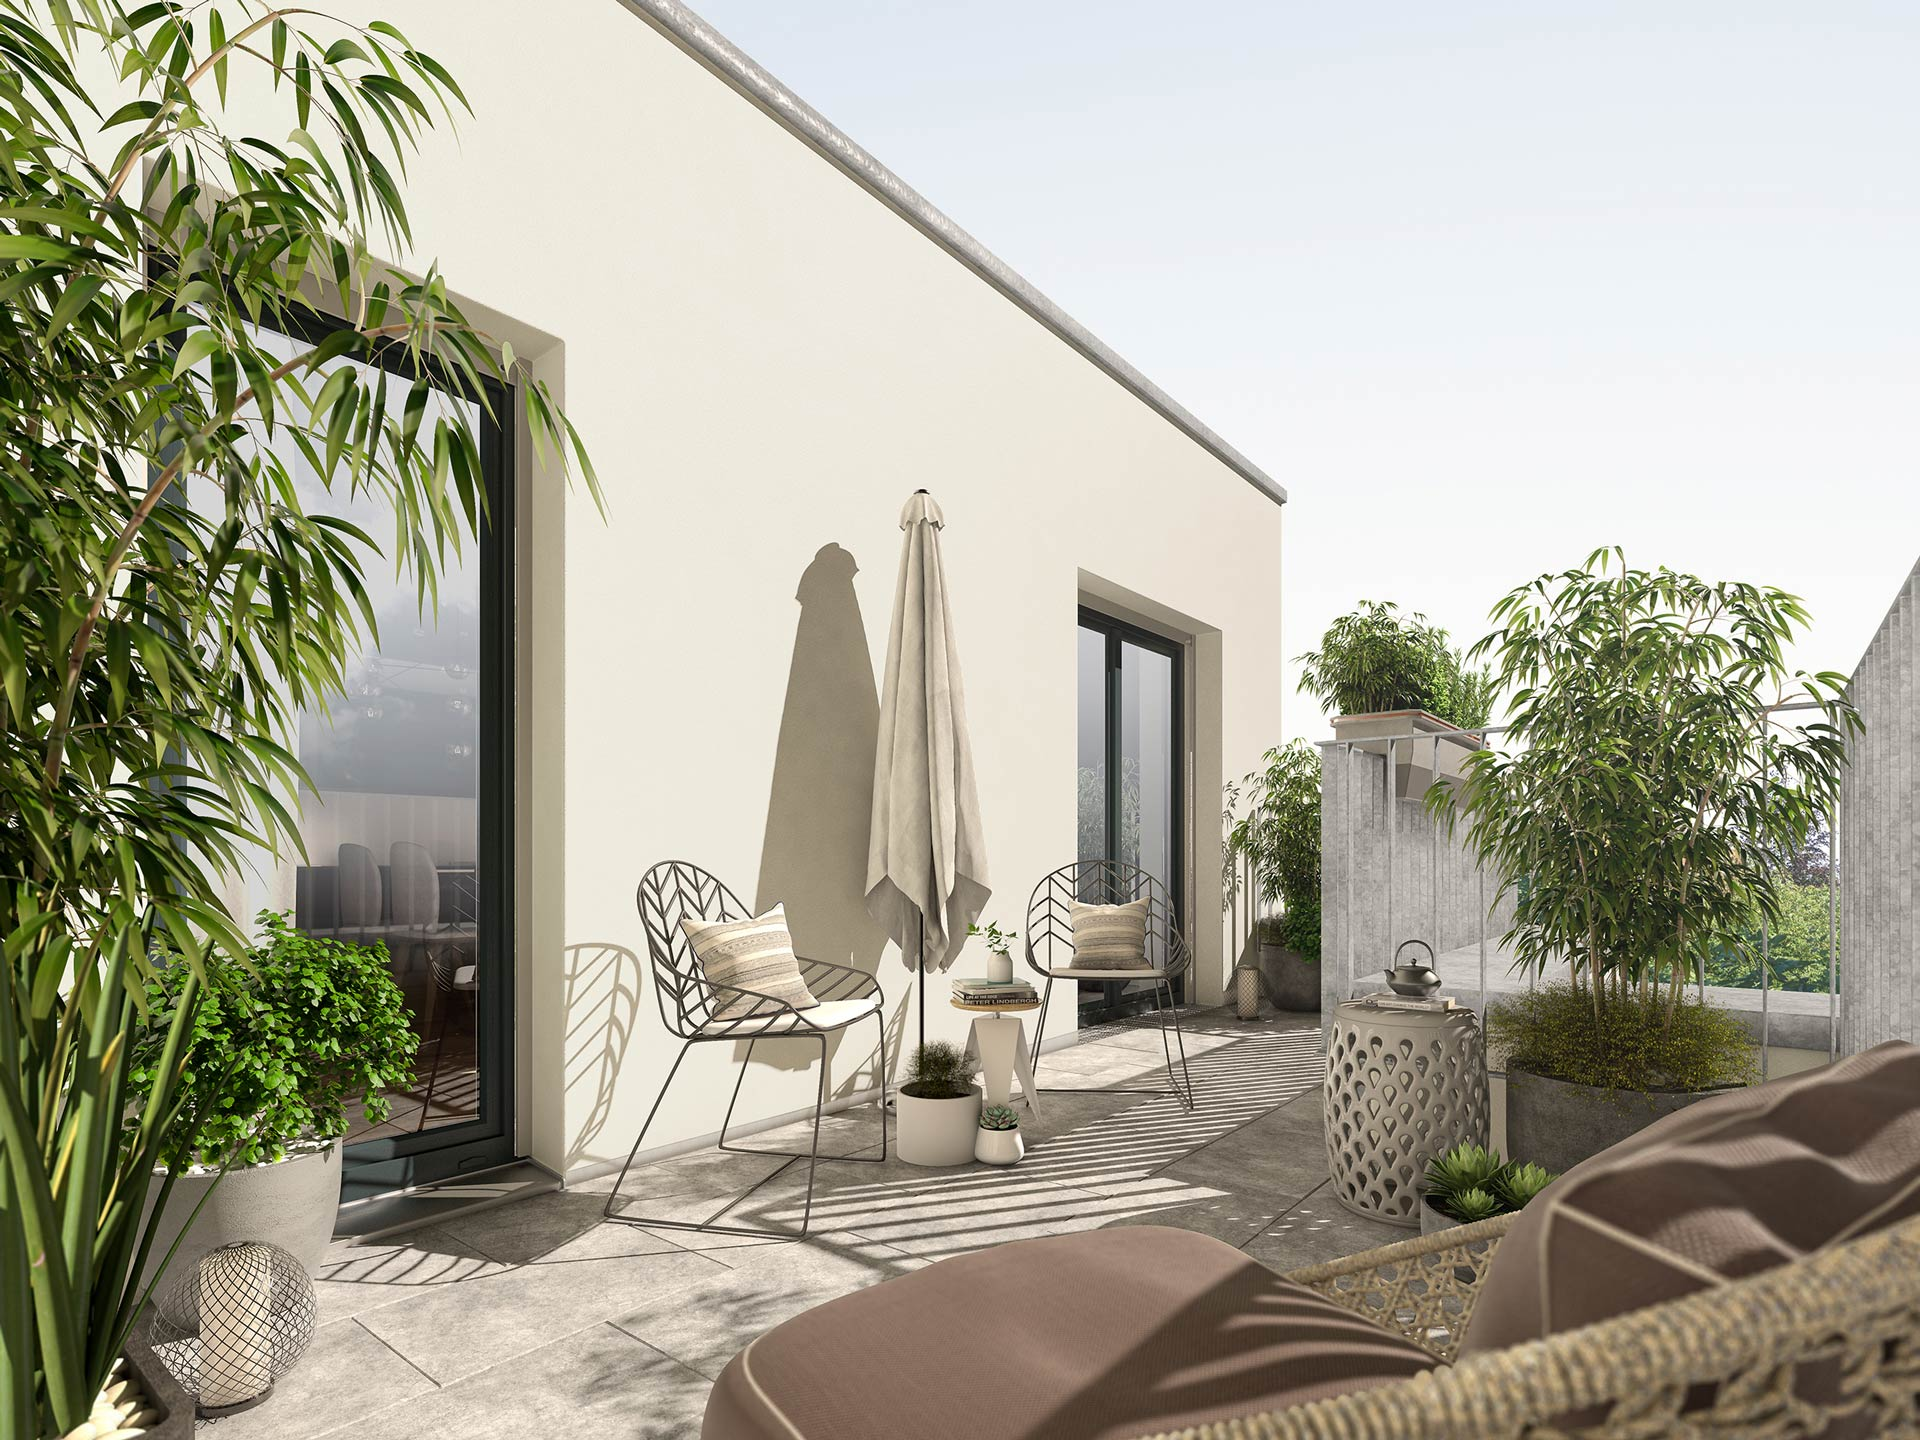 Exclusive roof terraces with clear views into the sky over the rooftops of your neighbourhood